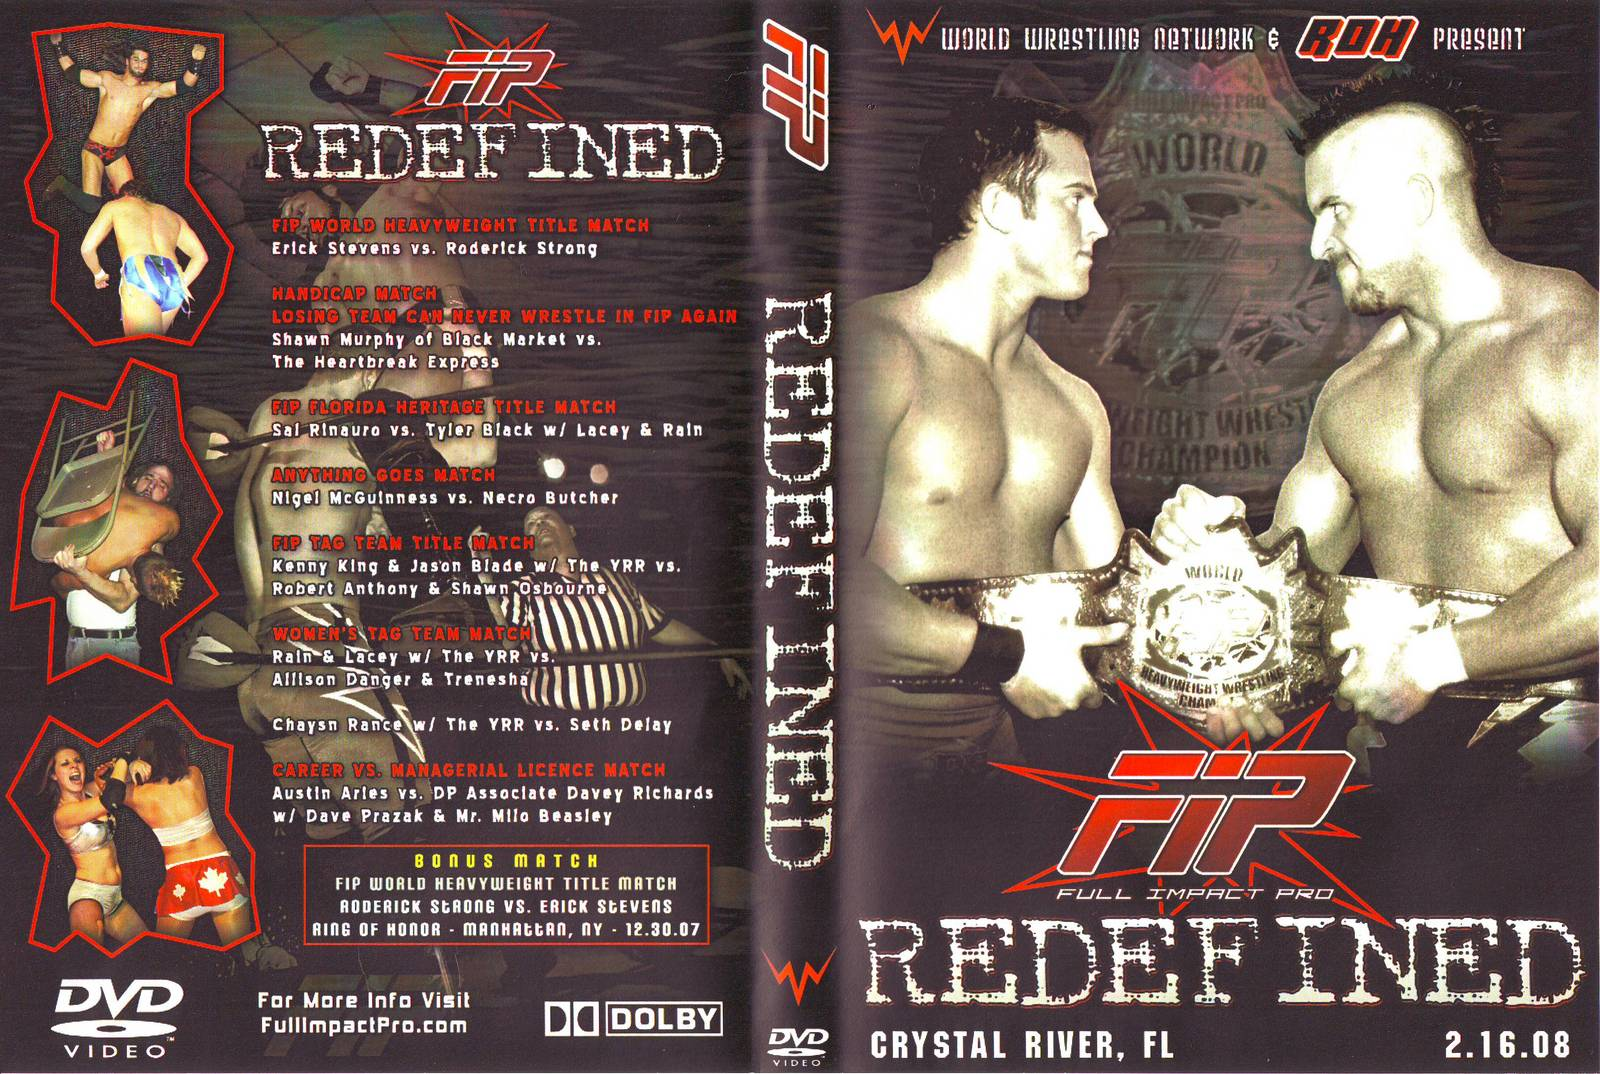 fipredefined2008coveraf5